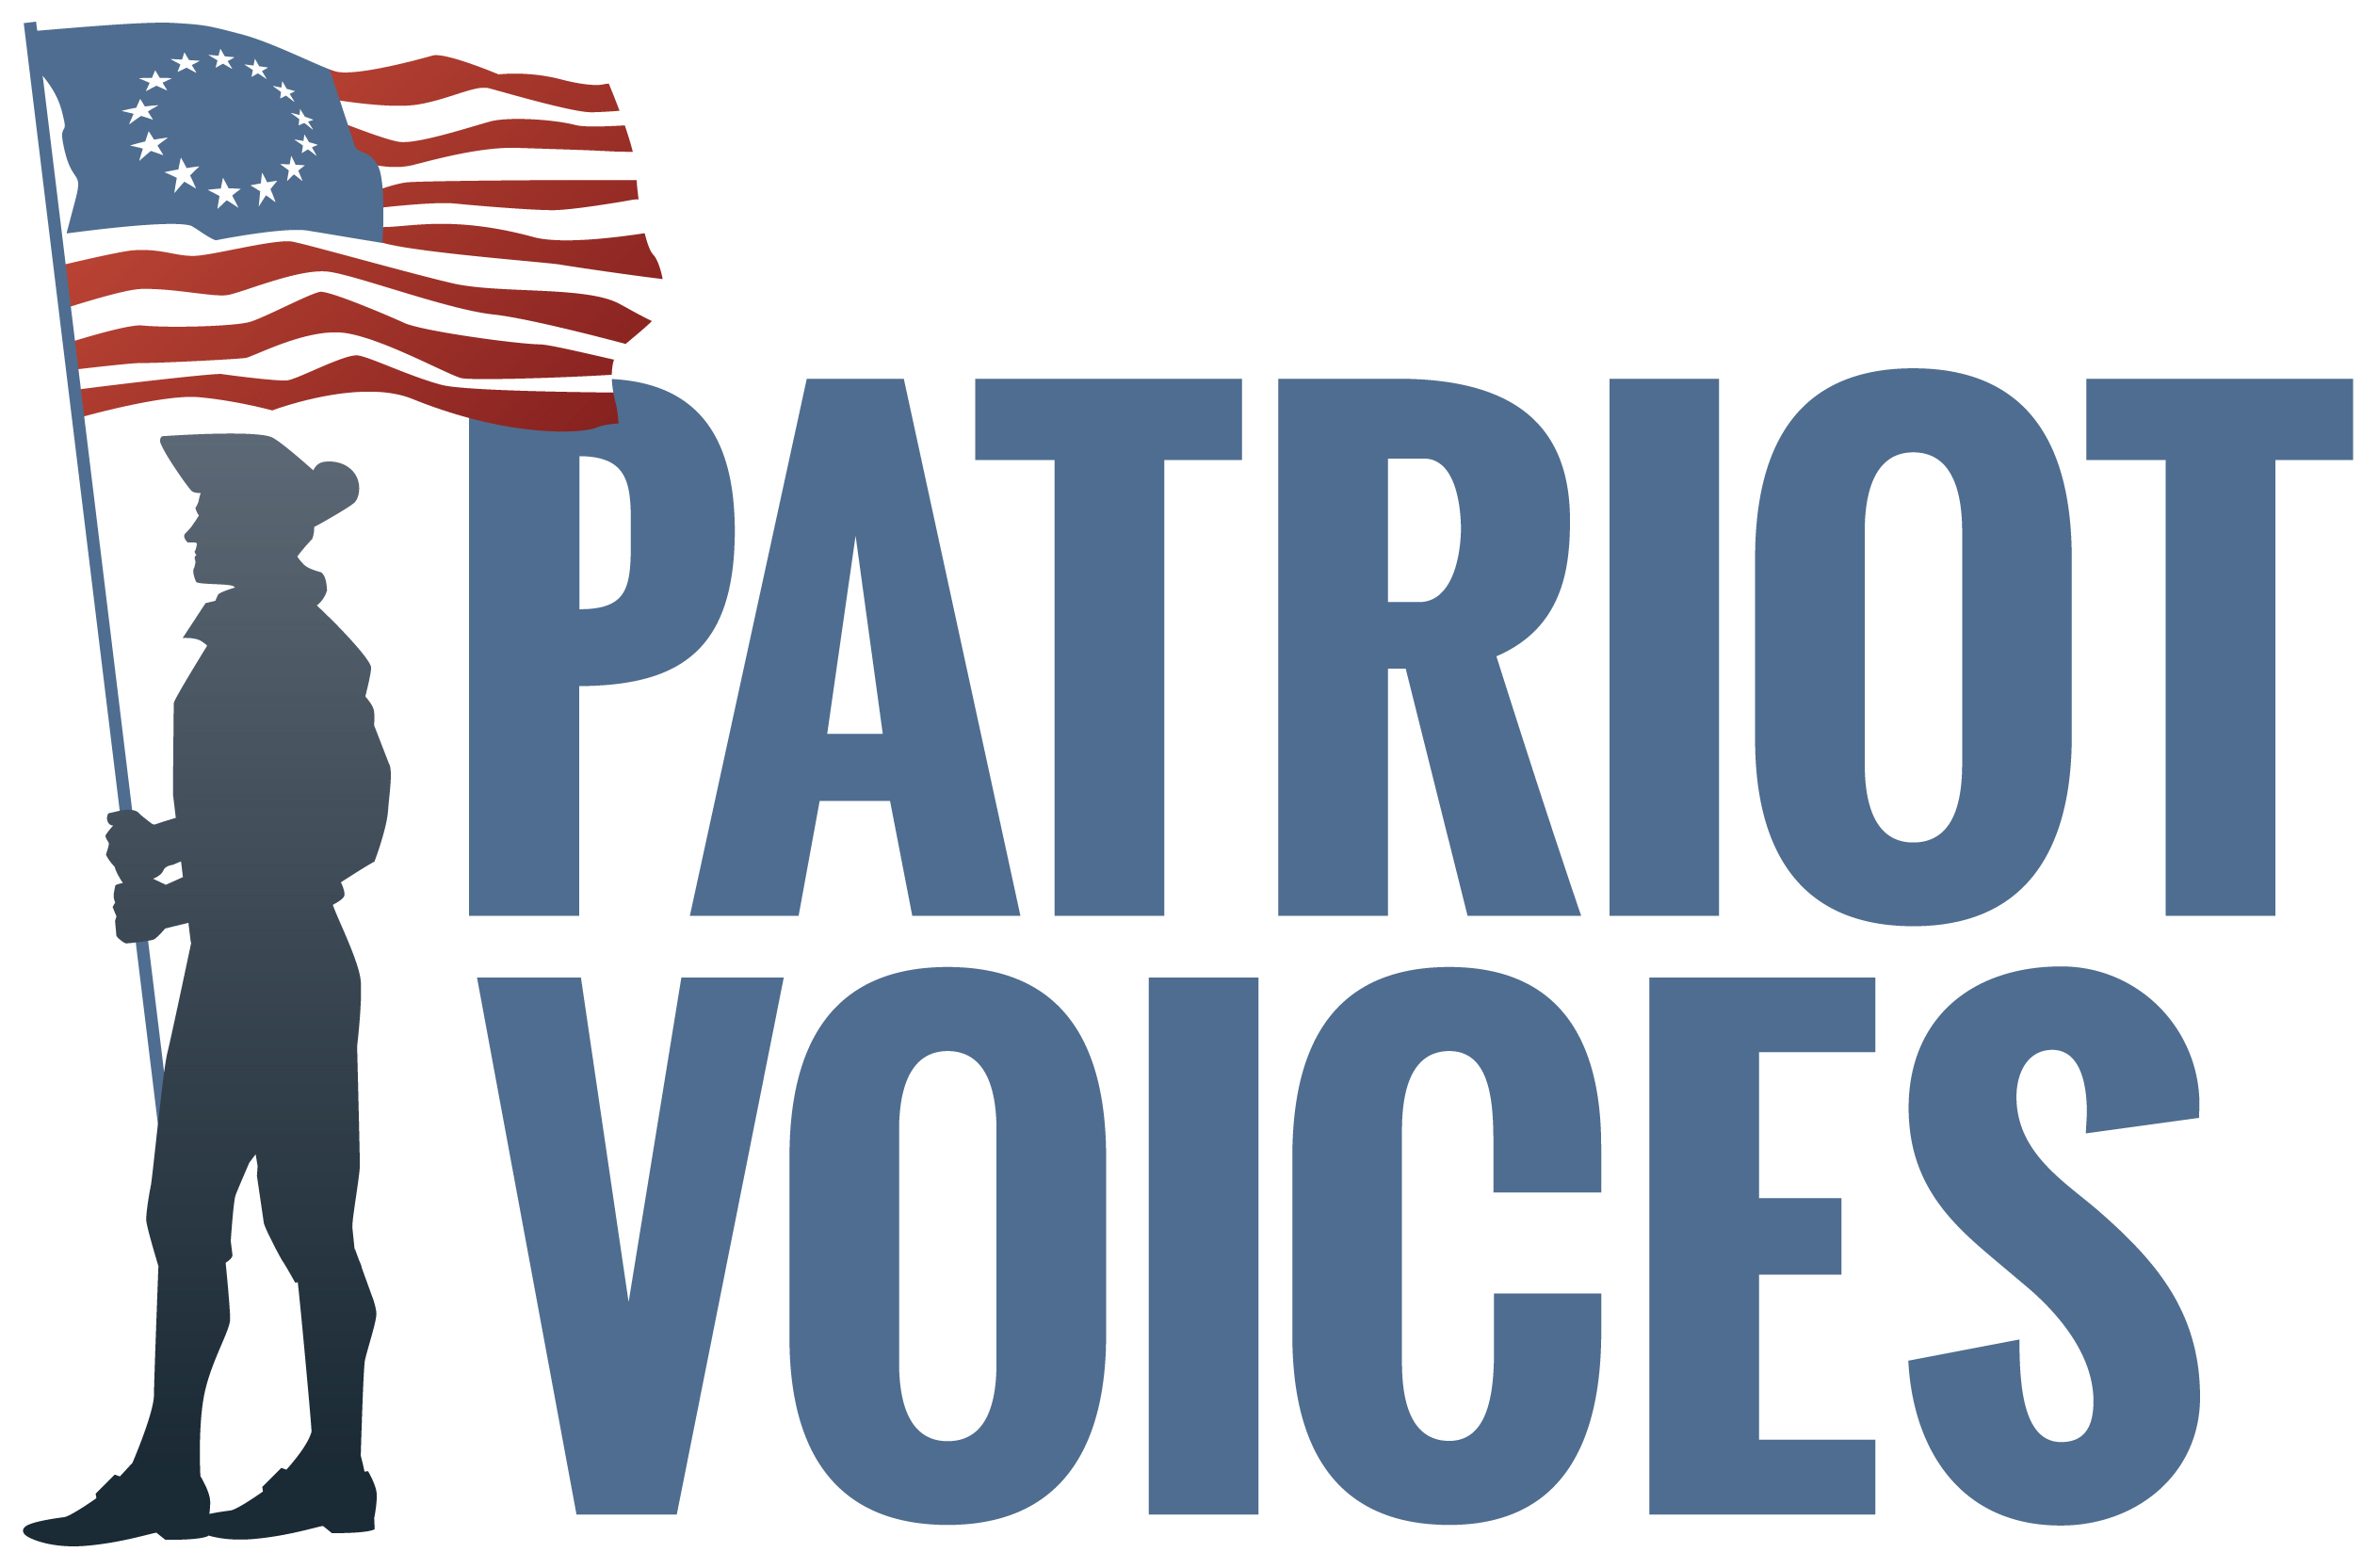 Patriot-Voices-4clr-stacked_FB.jpg